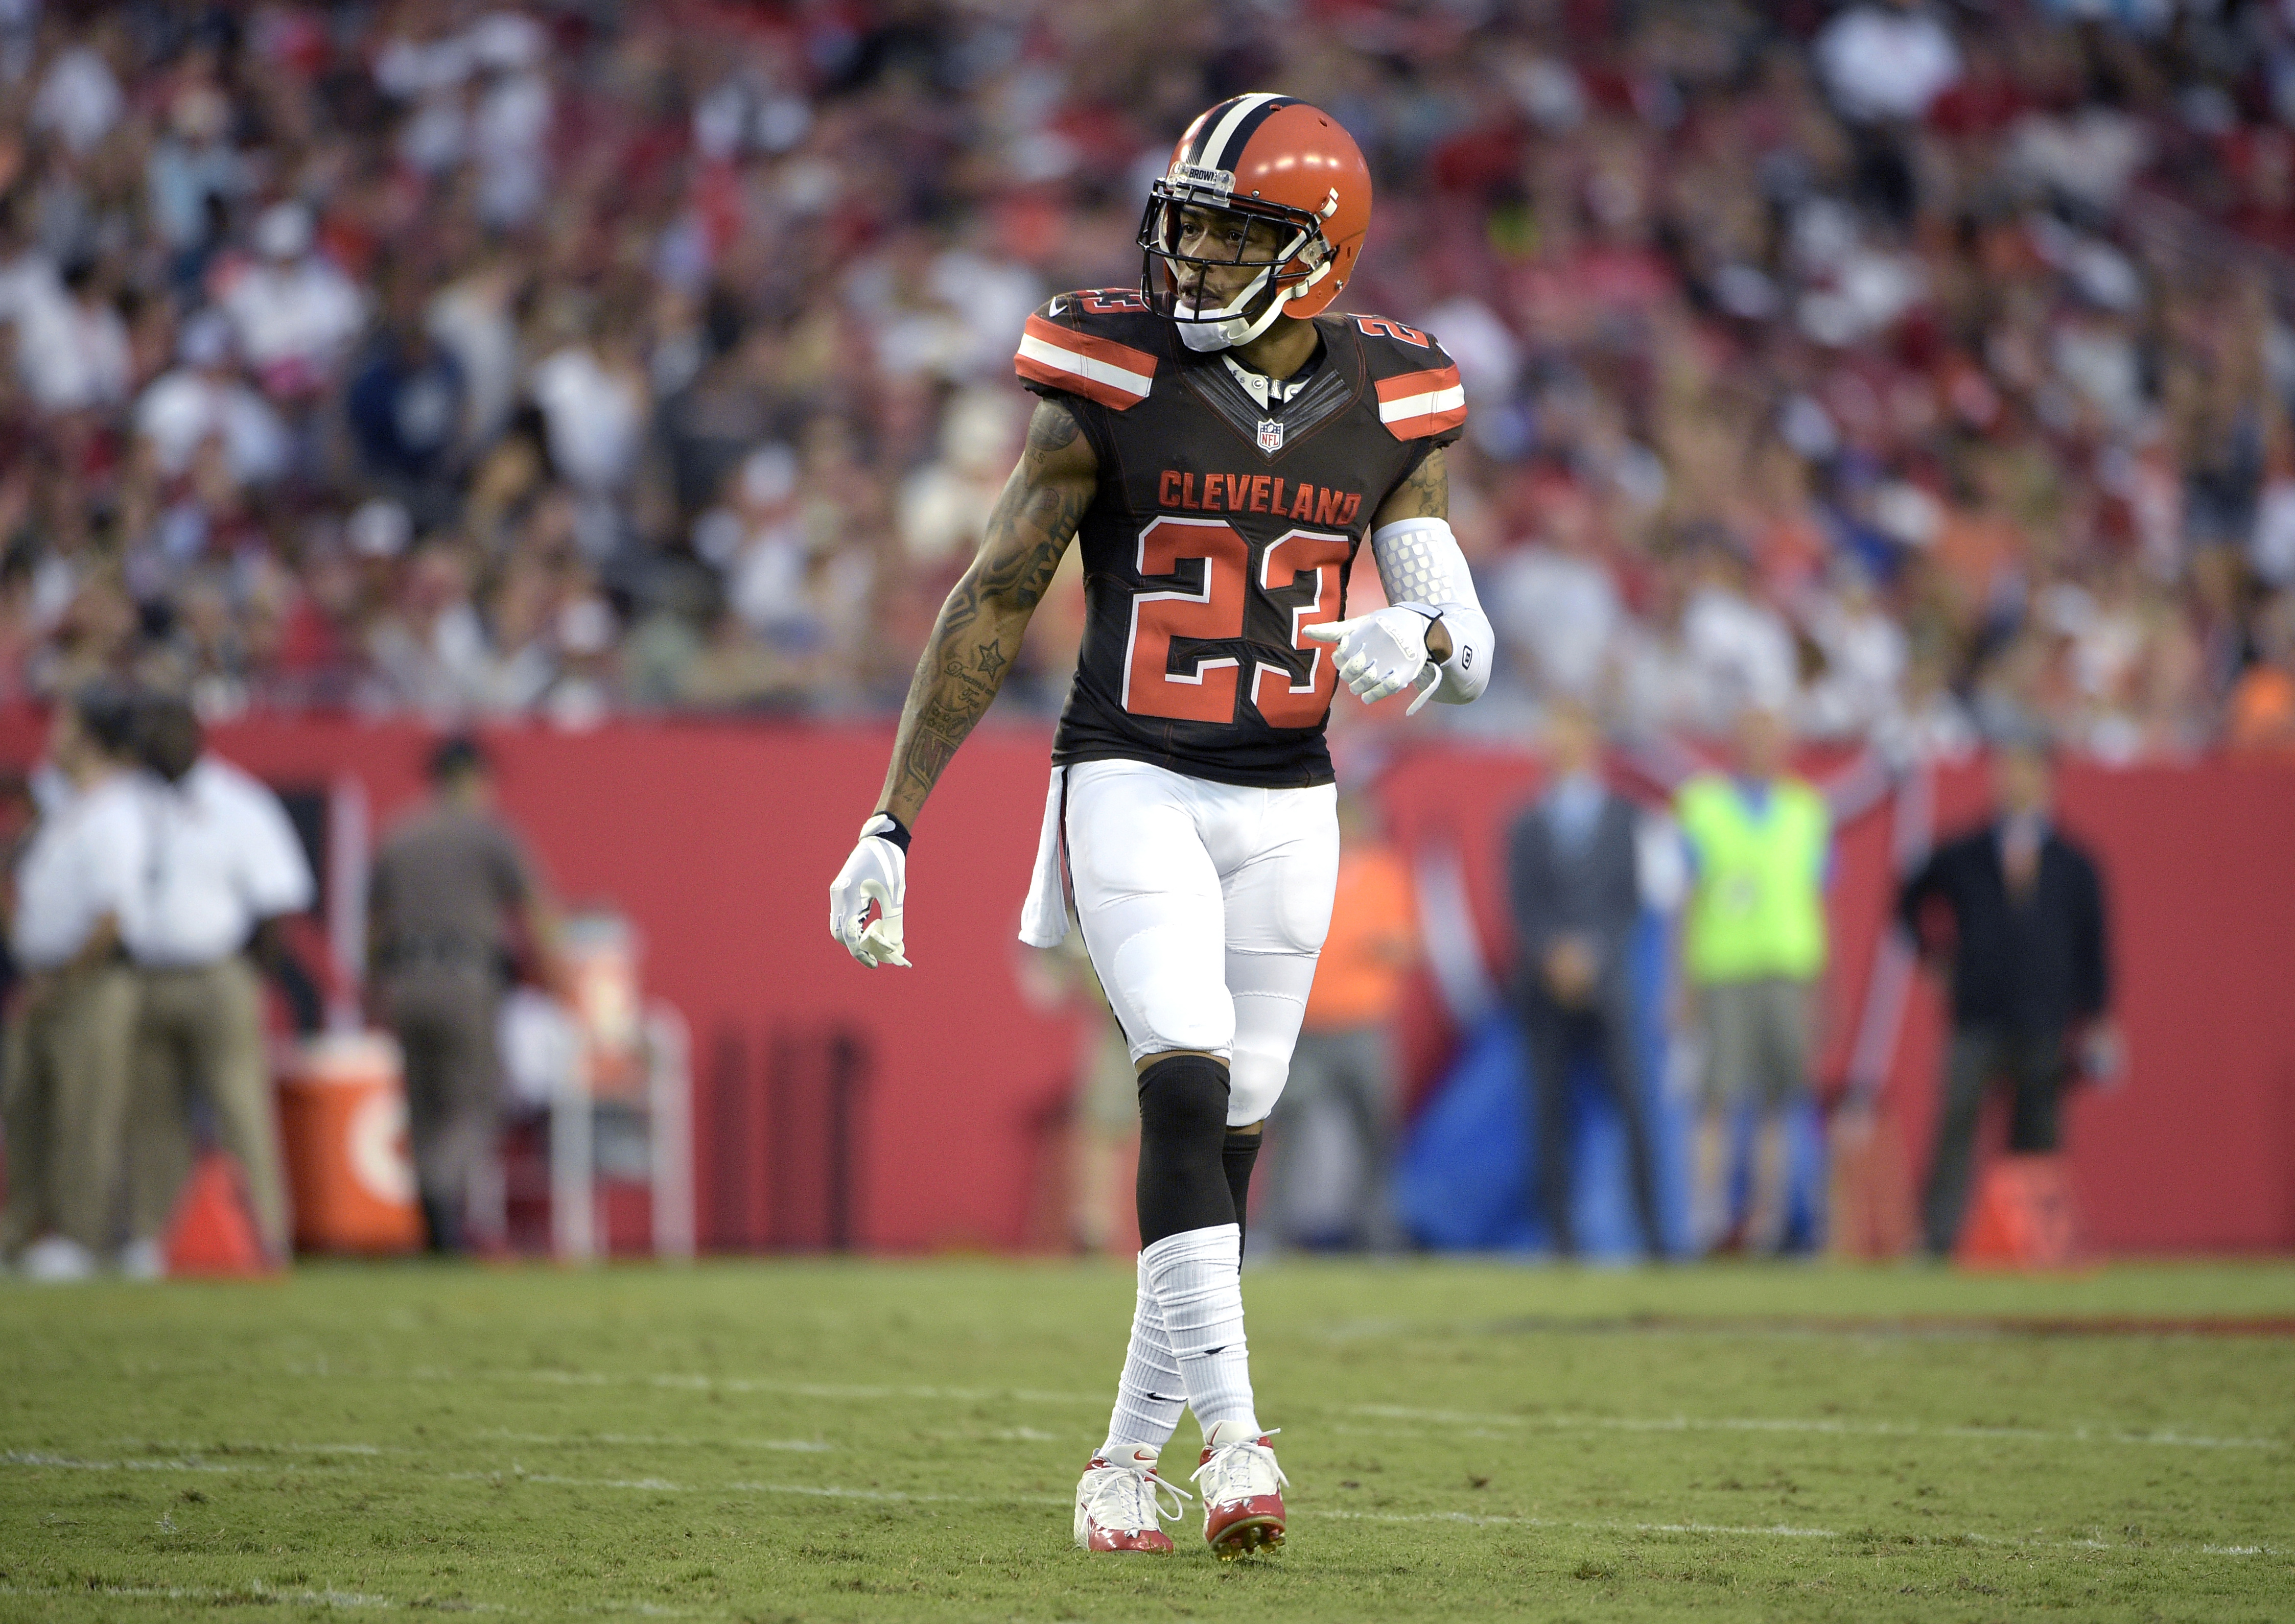 FILE - In this Aug. 29, 2015, file photo, Cleveland Browns cornerback Joe Haden prepares for a play during the the team's NFL preseason football game against the Tampa Bay Buccaneers in Tampa, Fla. Haden underwent surgery on his ankle earlier this week an